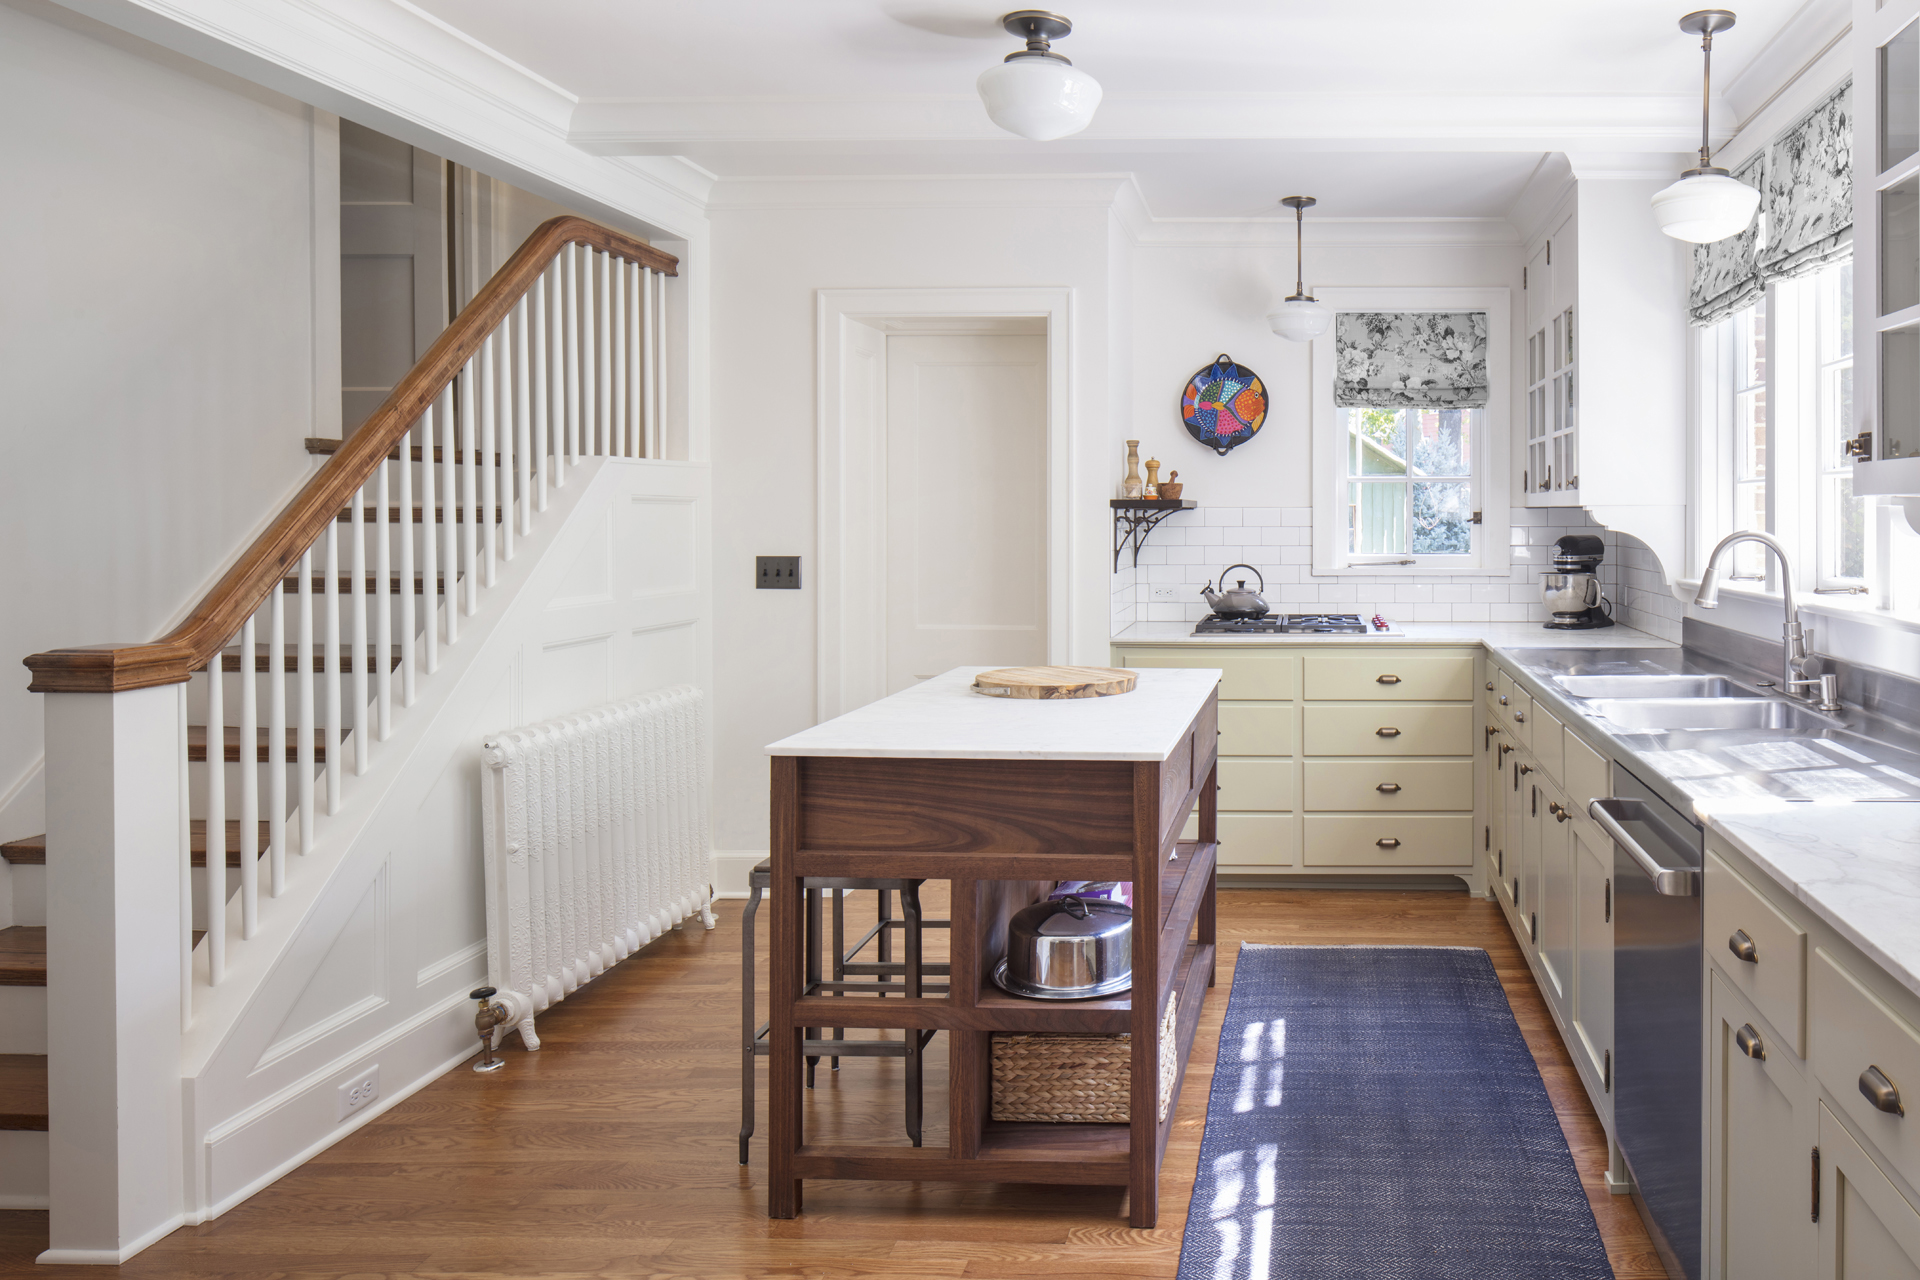 hight resolution of f da was asked to redesign a kitchen and breakfast area in the historic electrical house which was j c nichols first model home